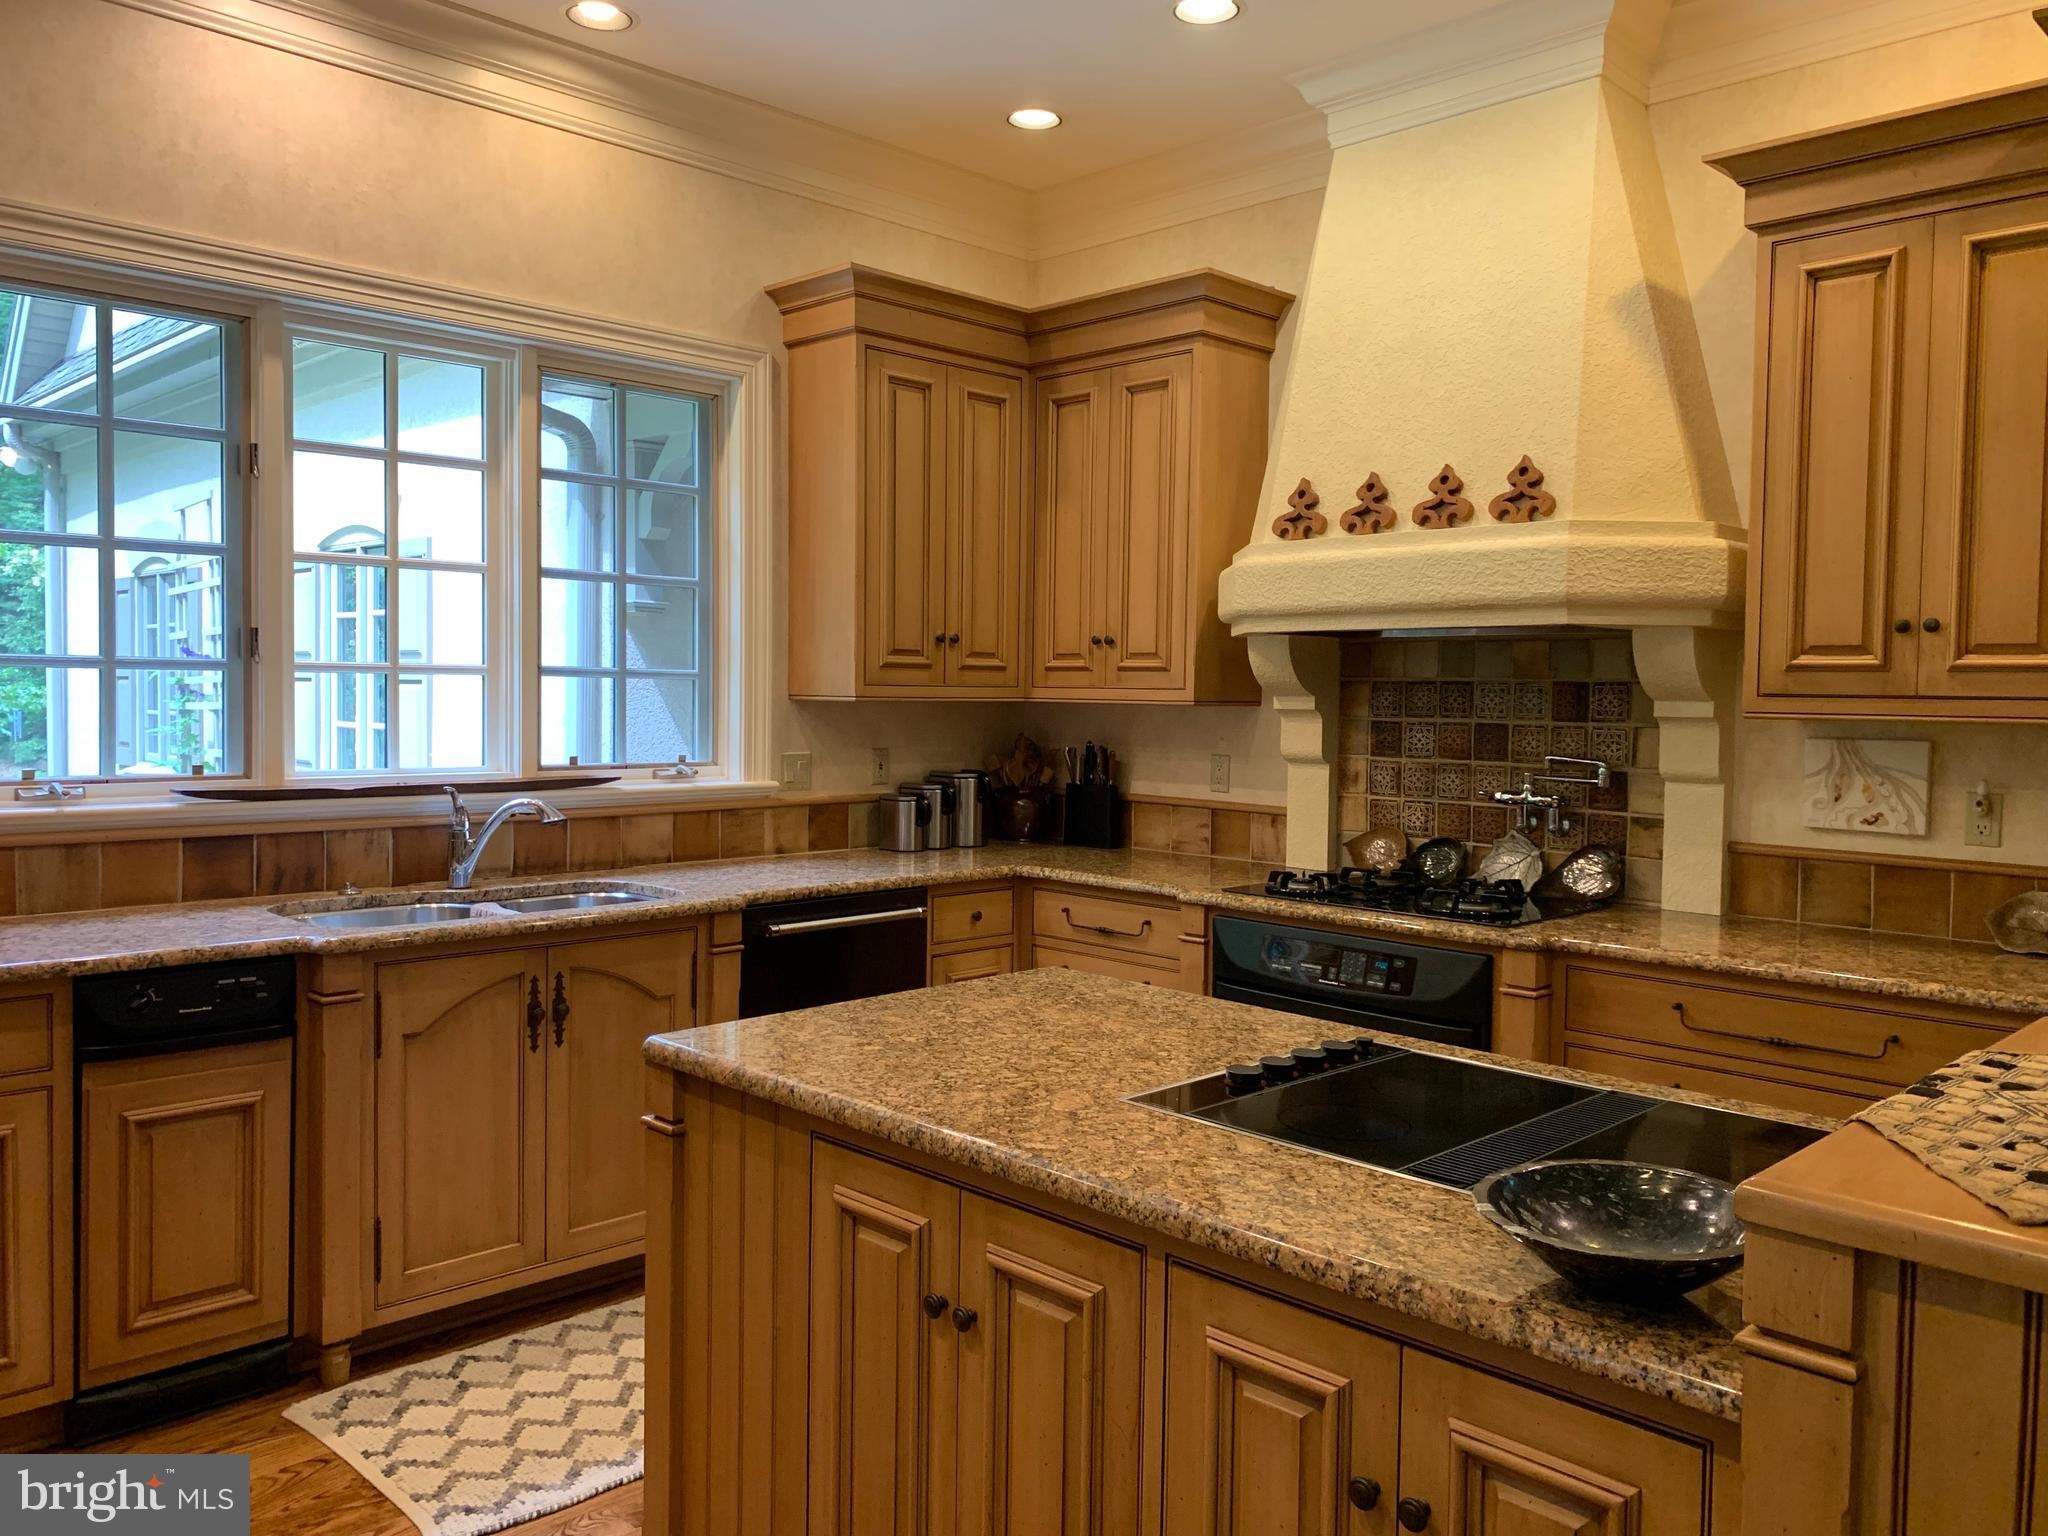 Kitchen - Your choice of electric or gas cooking